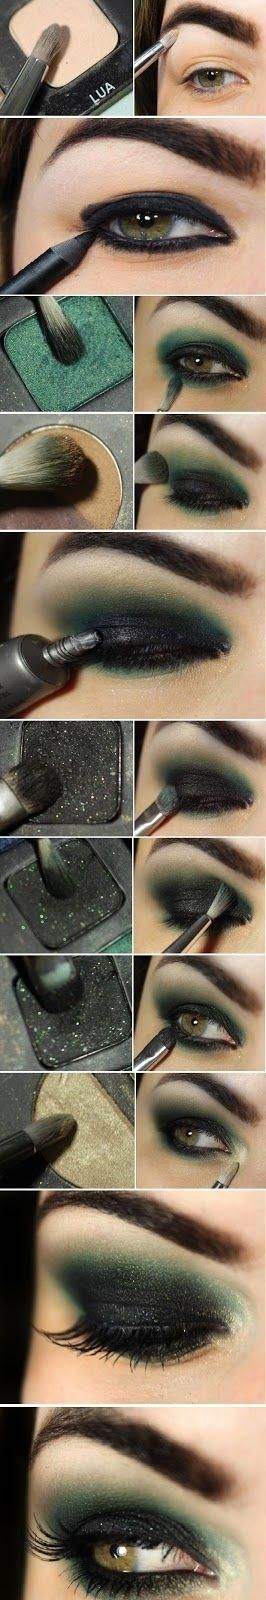 How to : Easy Sexy Black & Green Makeup Tutorials # Step by Step / Best LoLus Makeup Fashion